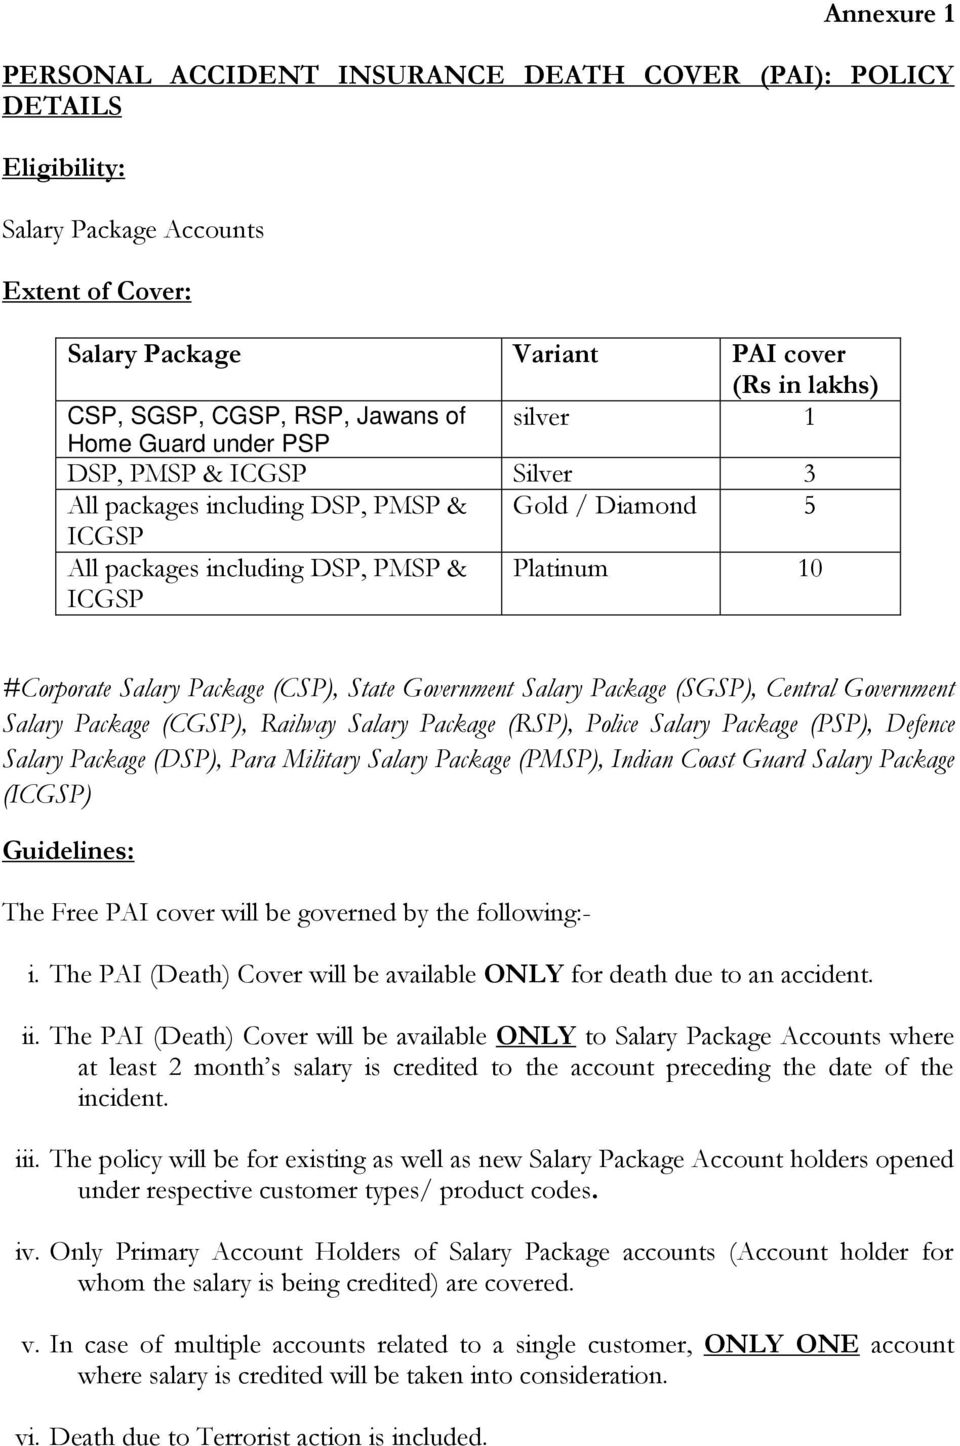 Package (CSP), State Government Salary Package (SGSP), Central Government Salary Package (CGSP), Railway Salary Package (RSP), Police Salary Package (PSP), Defence Salary Package (DSP), Para Military